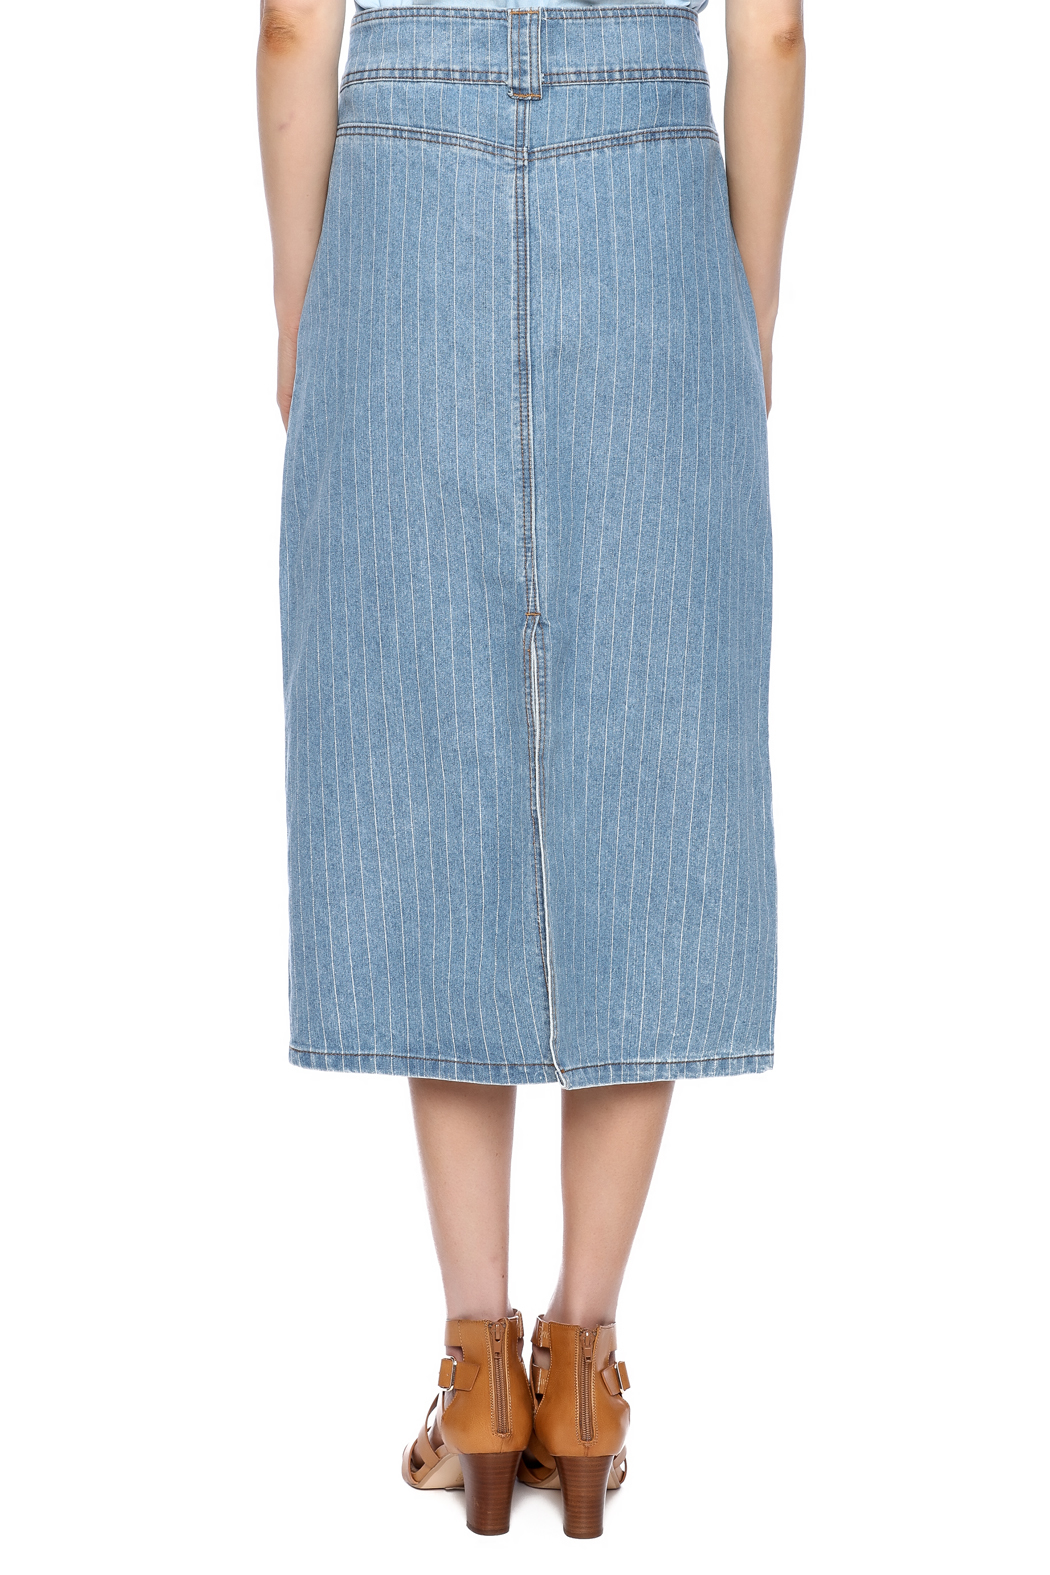 Sweet Jeans Pin Stripe Midi Skirt - Back Cropped Image